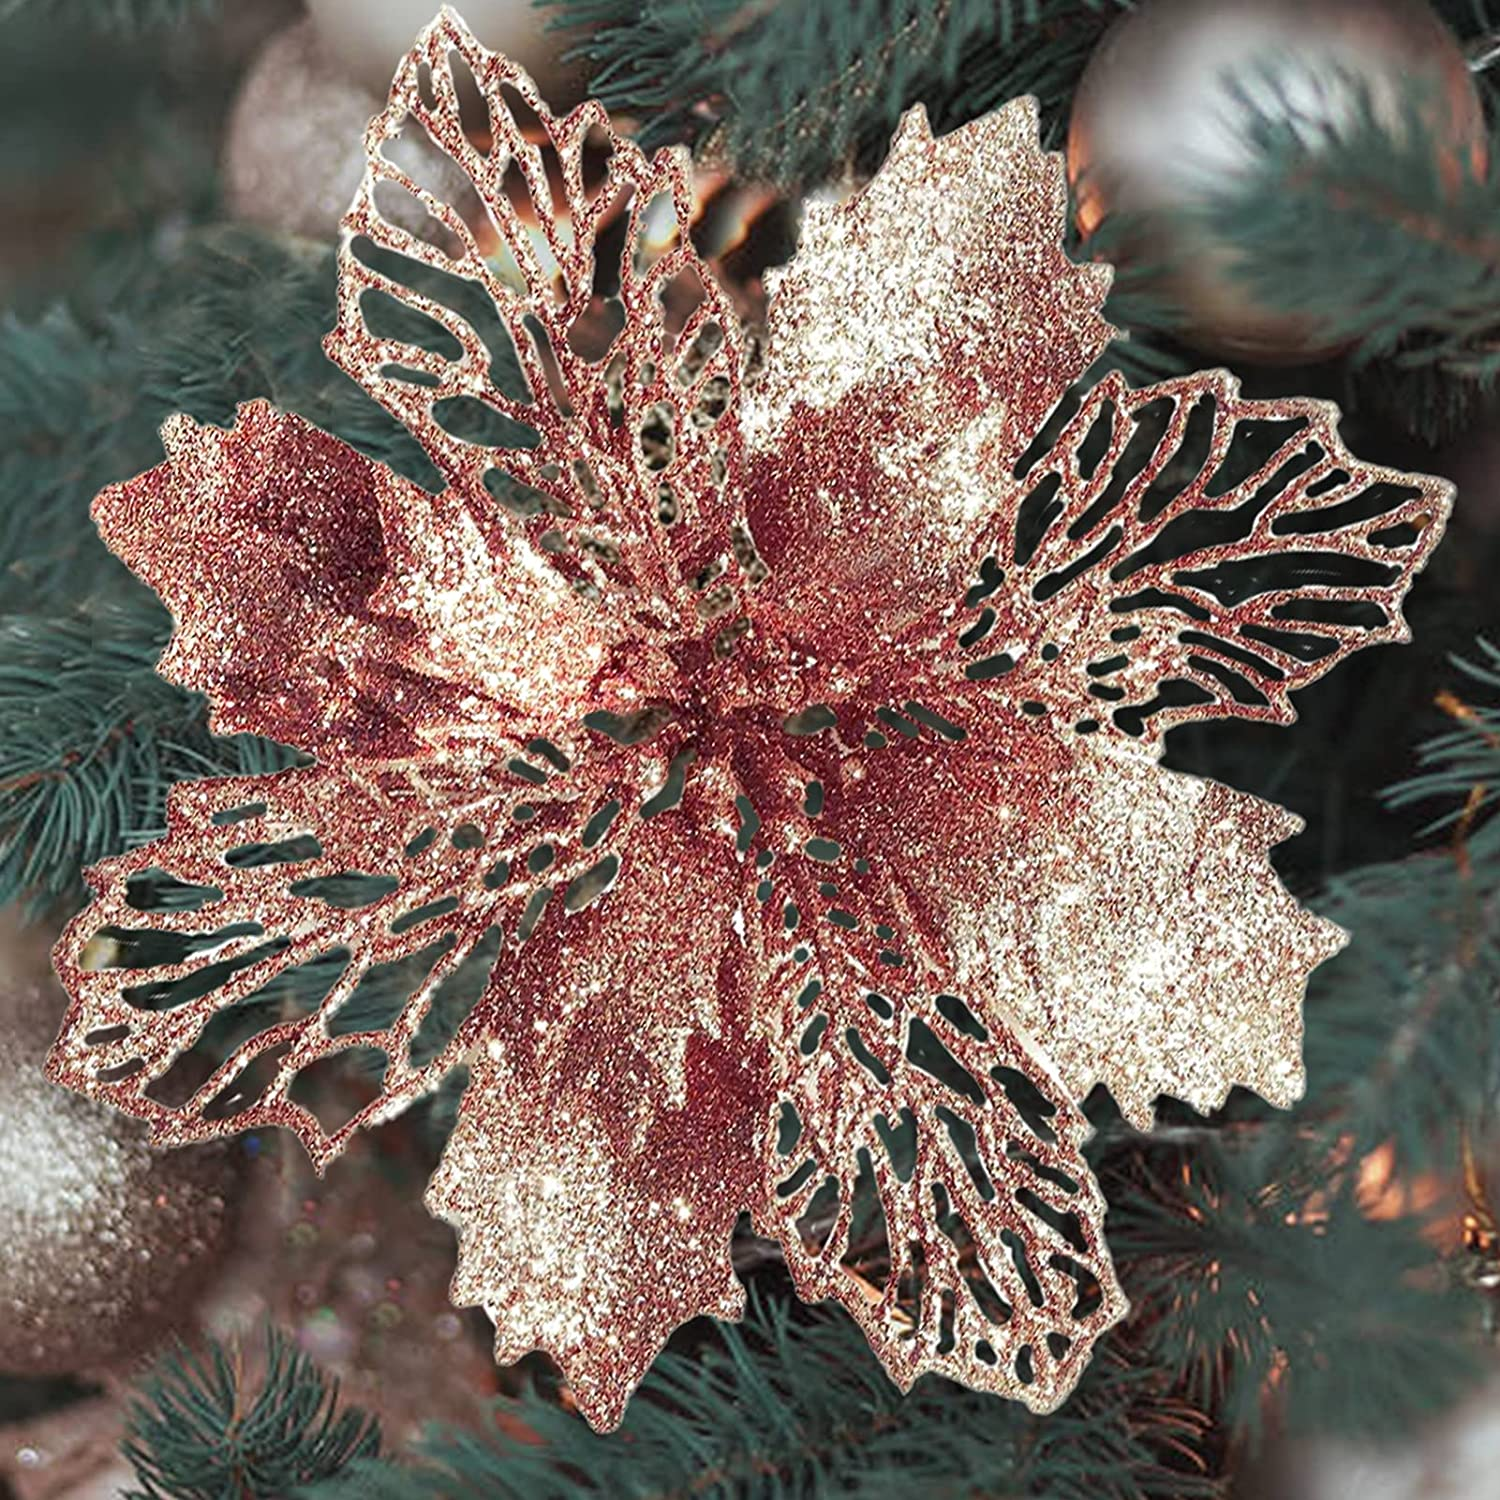 Artificial Rose Gold Christmas Flowers 24pcs Glitter Fake Poinsettia Flowers Christmas Tree New Year Ornaments Flower Decorations 6